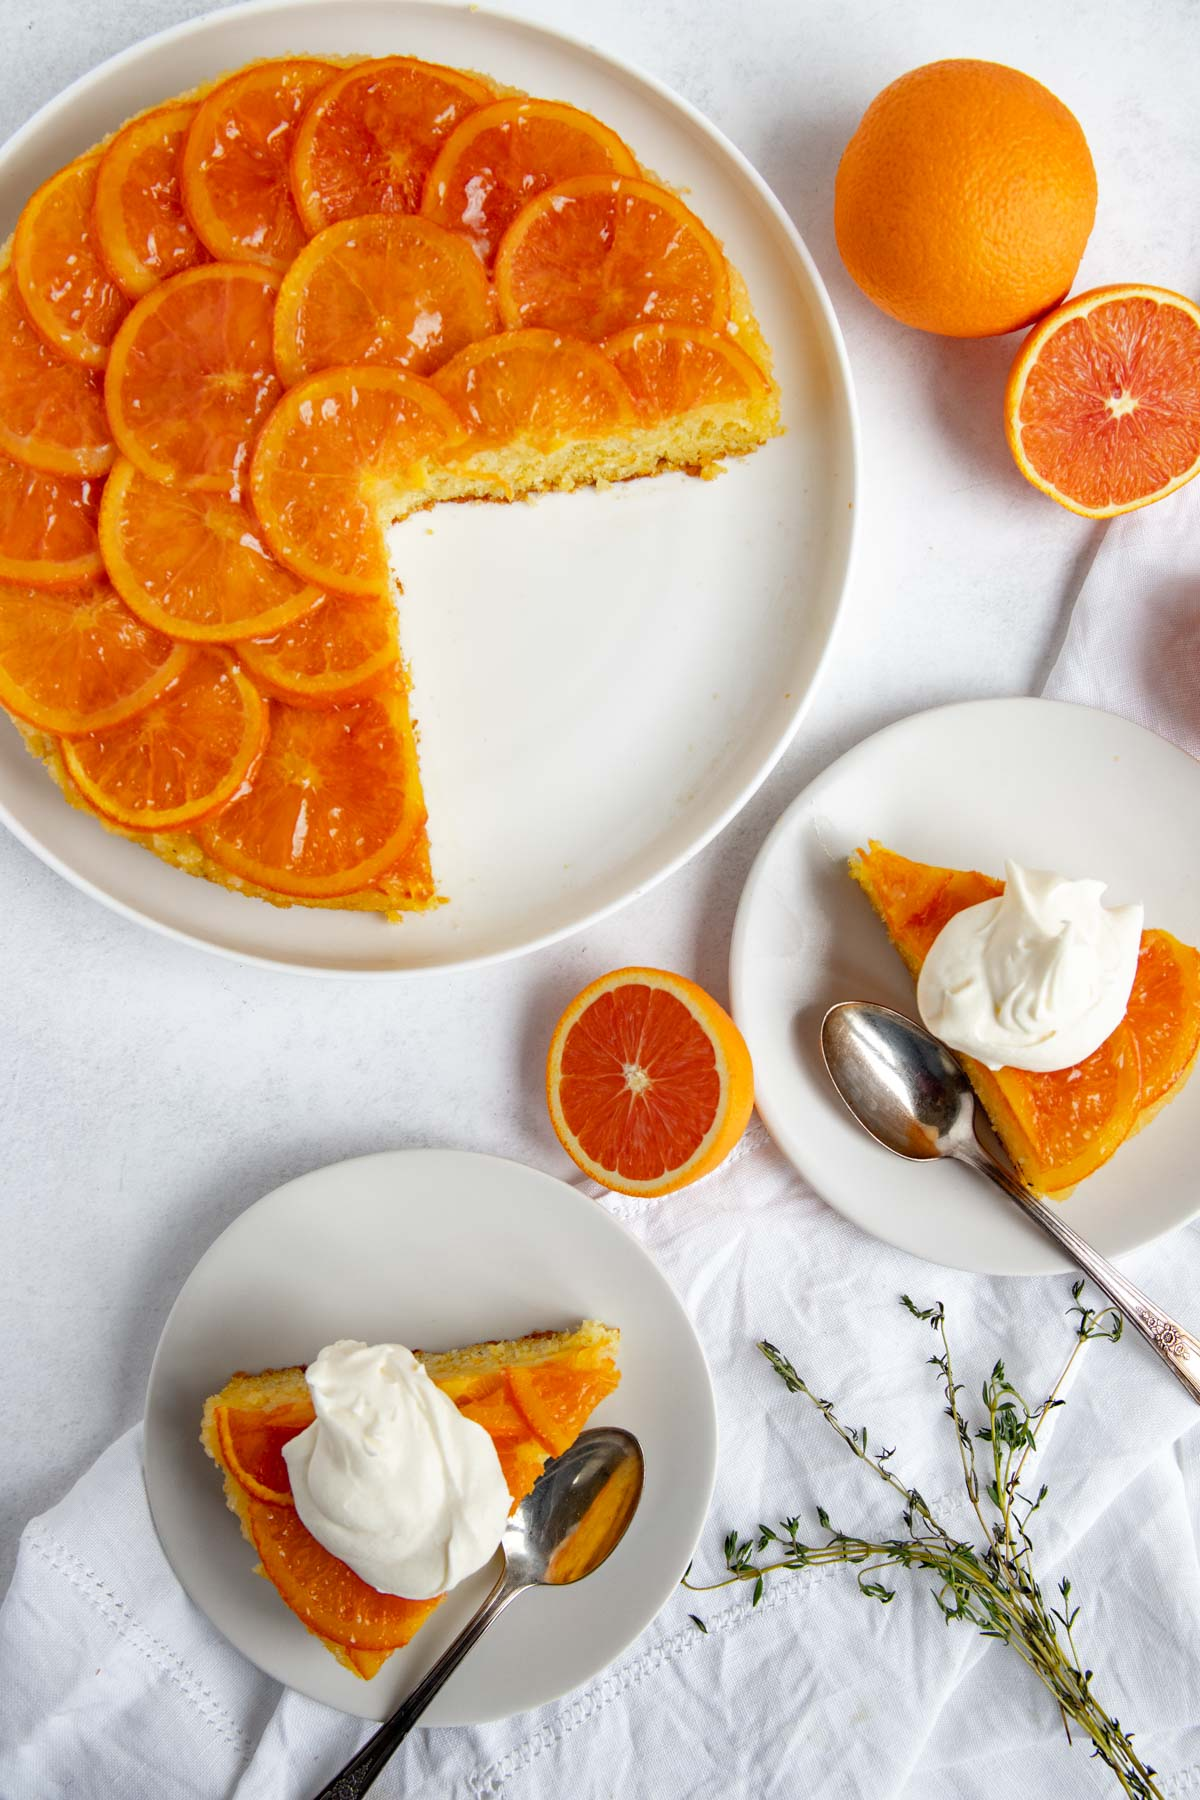 Orange upside-down cake on a plate surrounded by whole and cut oranges and two slices of cake on dessert plates